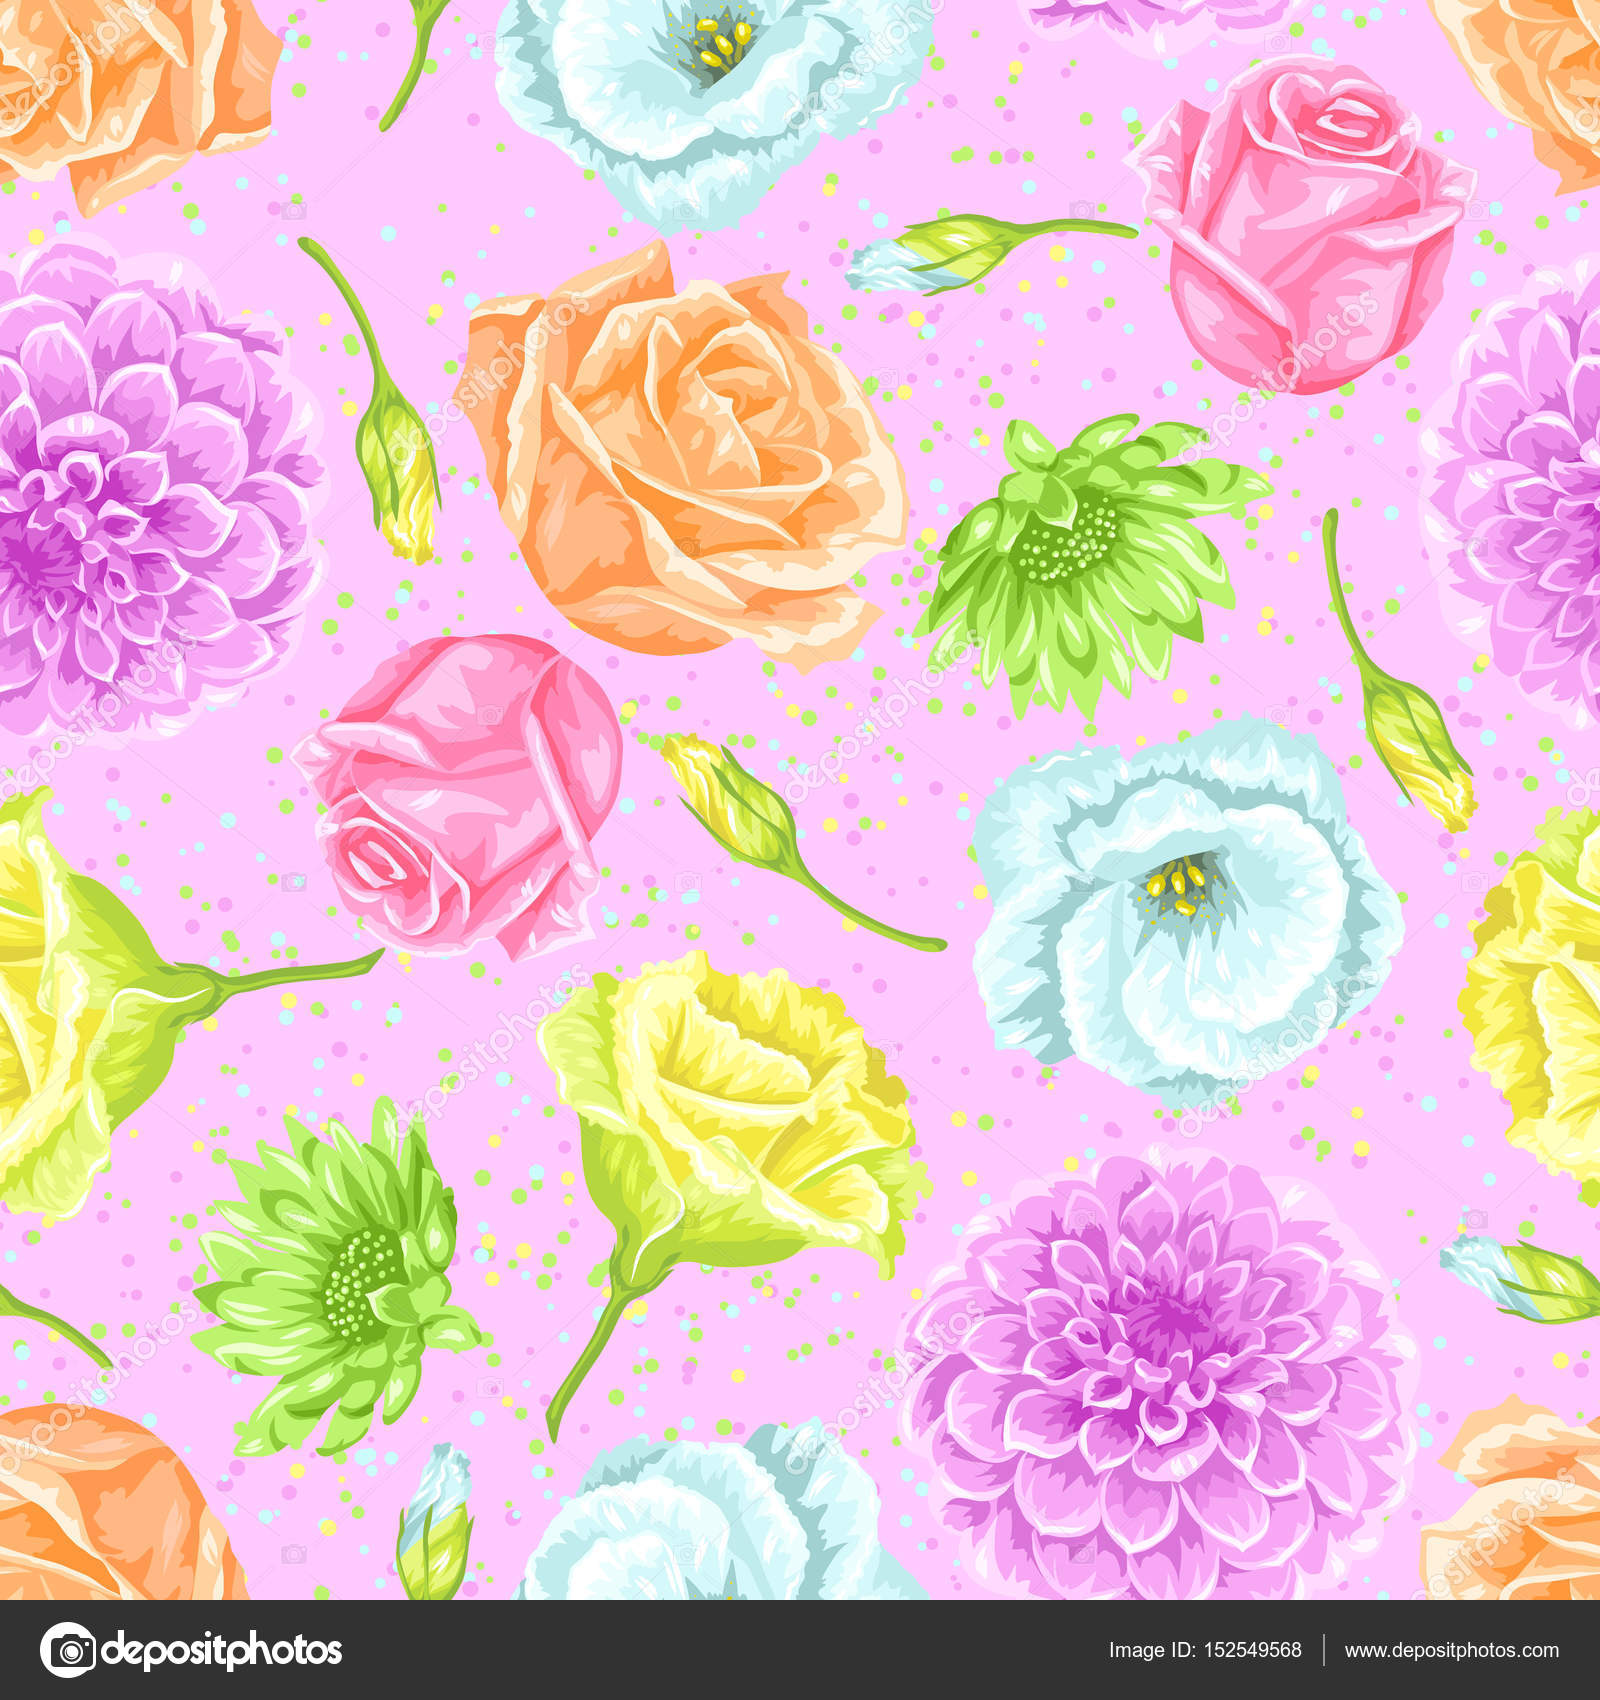 Seamless Pattern With Decorative Delicate Flowers Easy To Use For